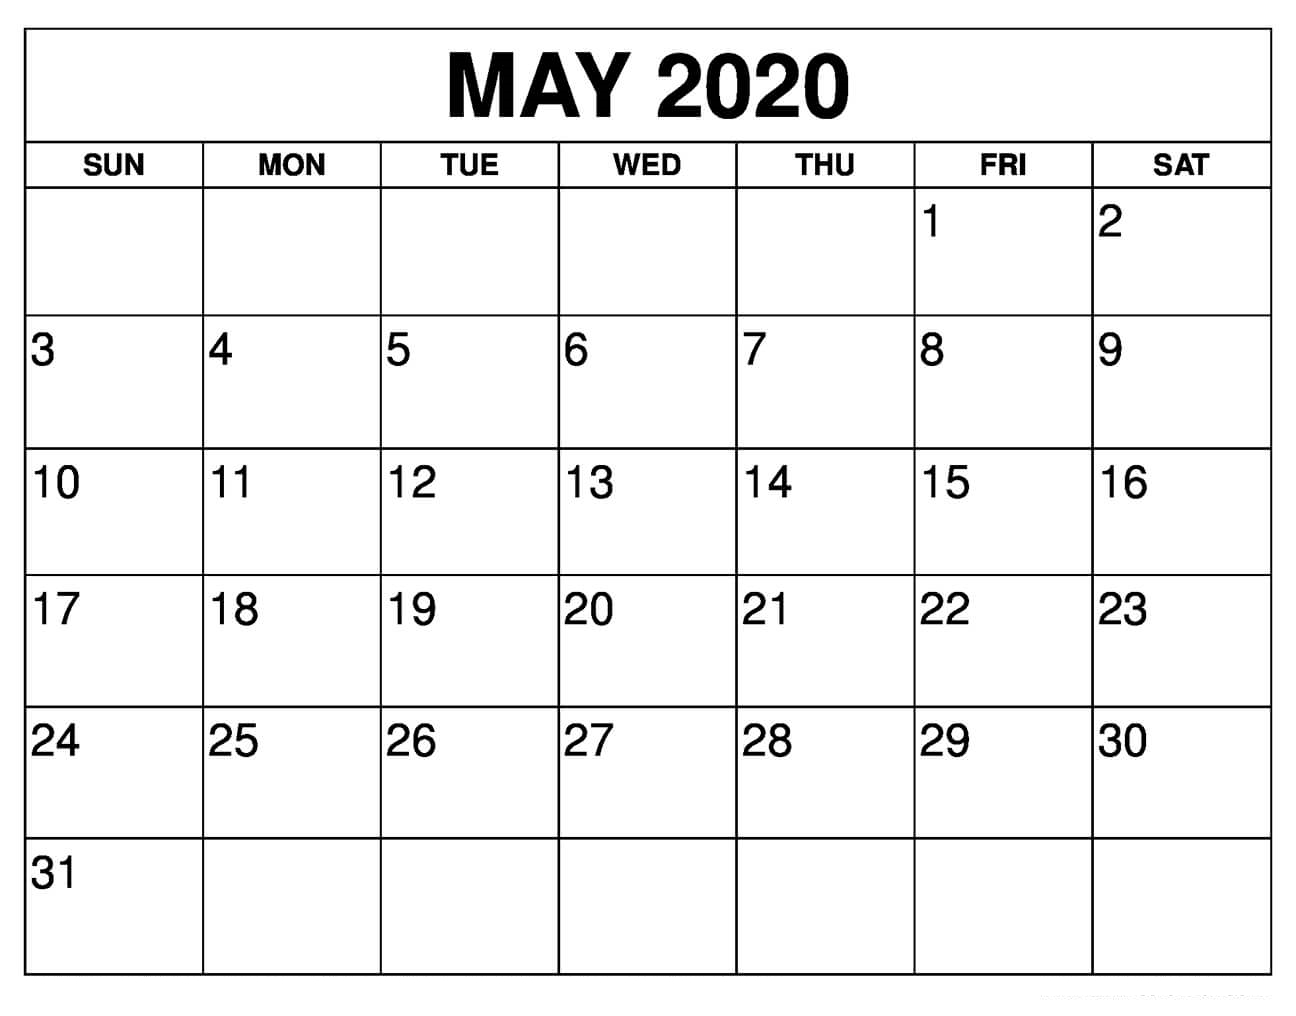 May 2020 Calendar Printable With Holidays Usa | 12 Month